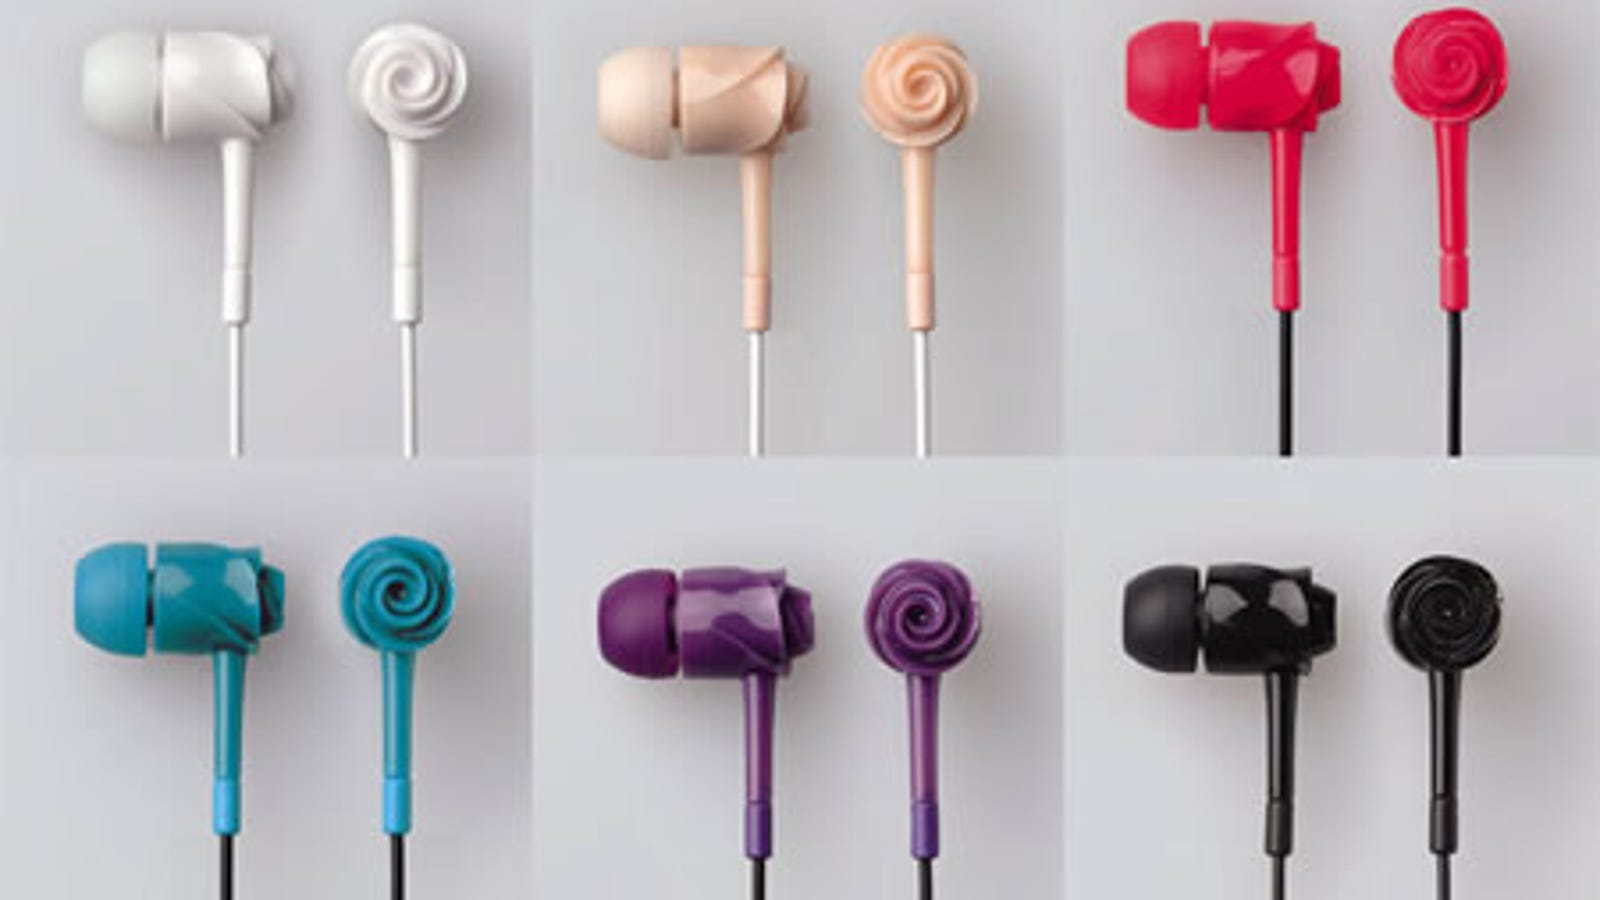 type c port earphones